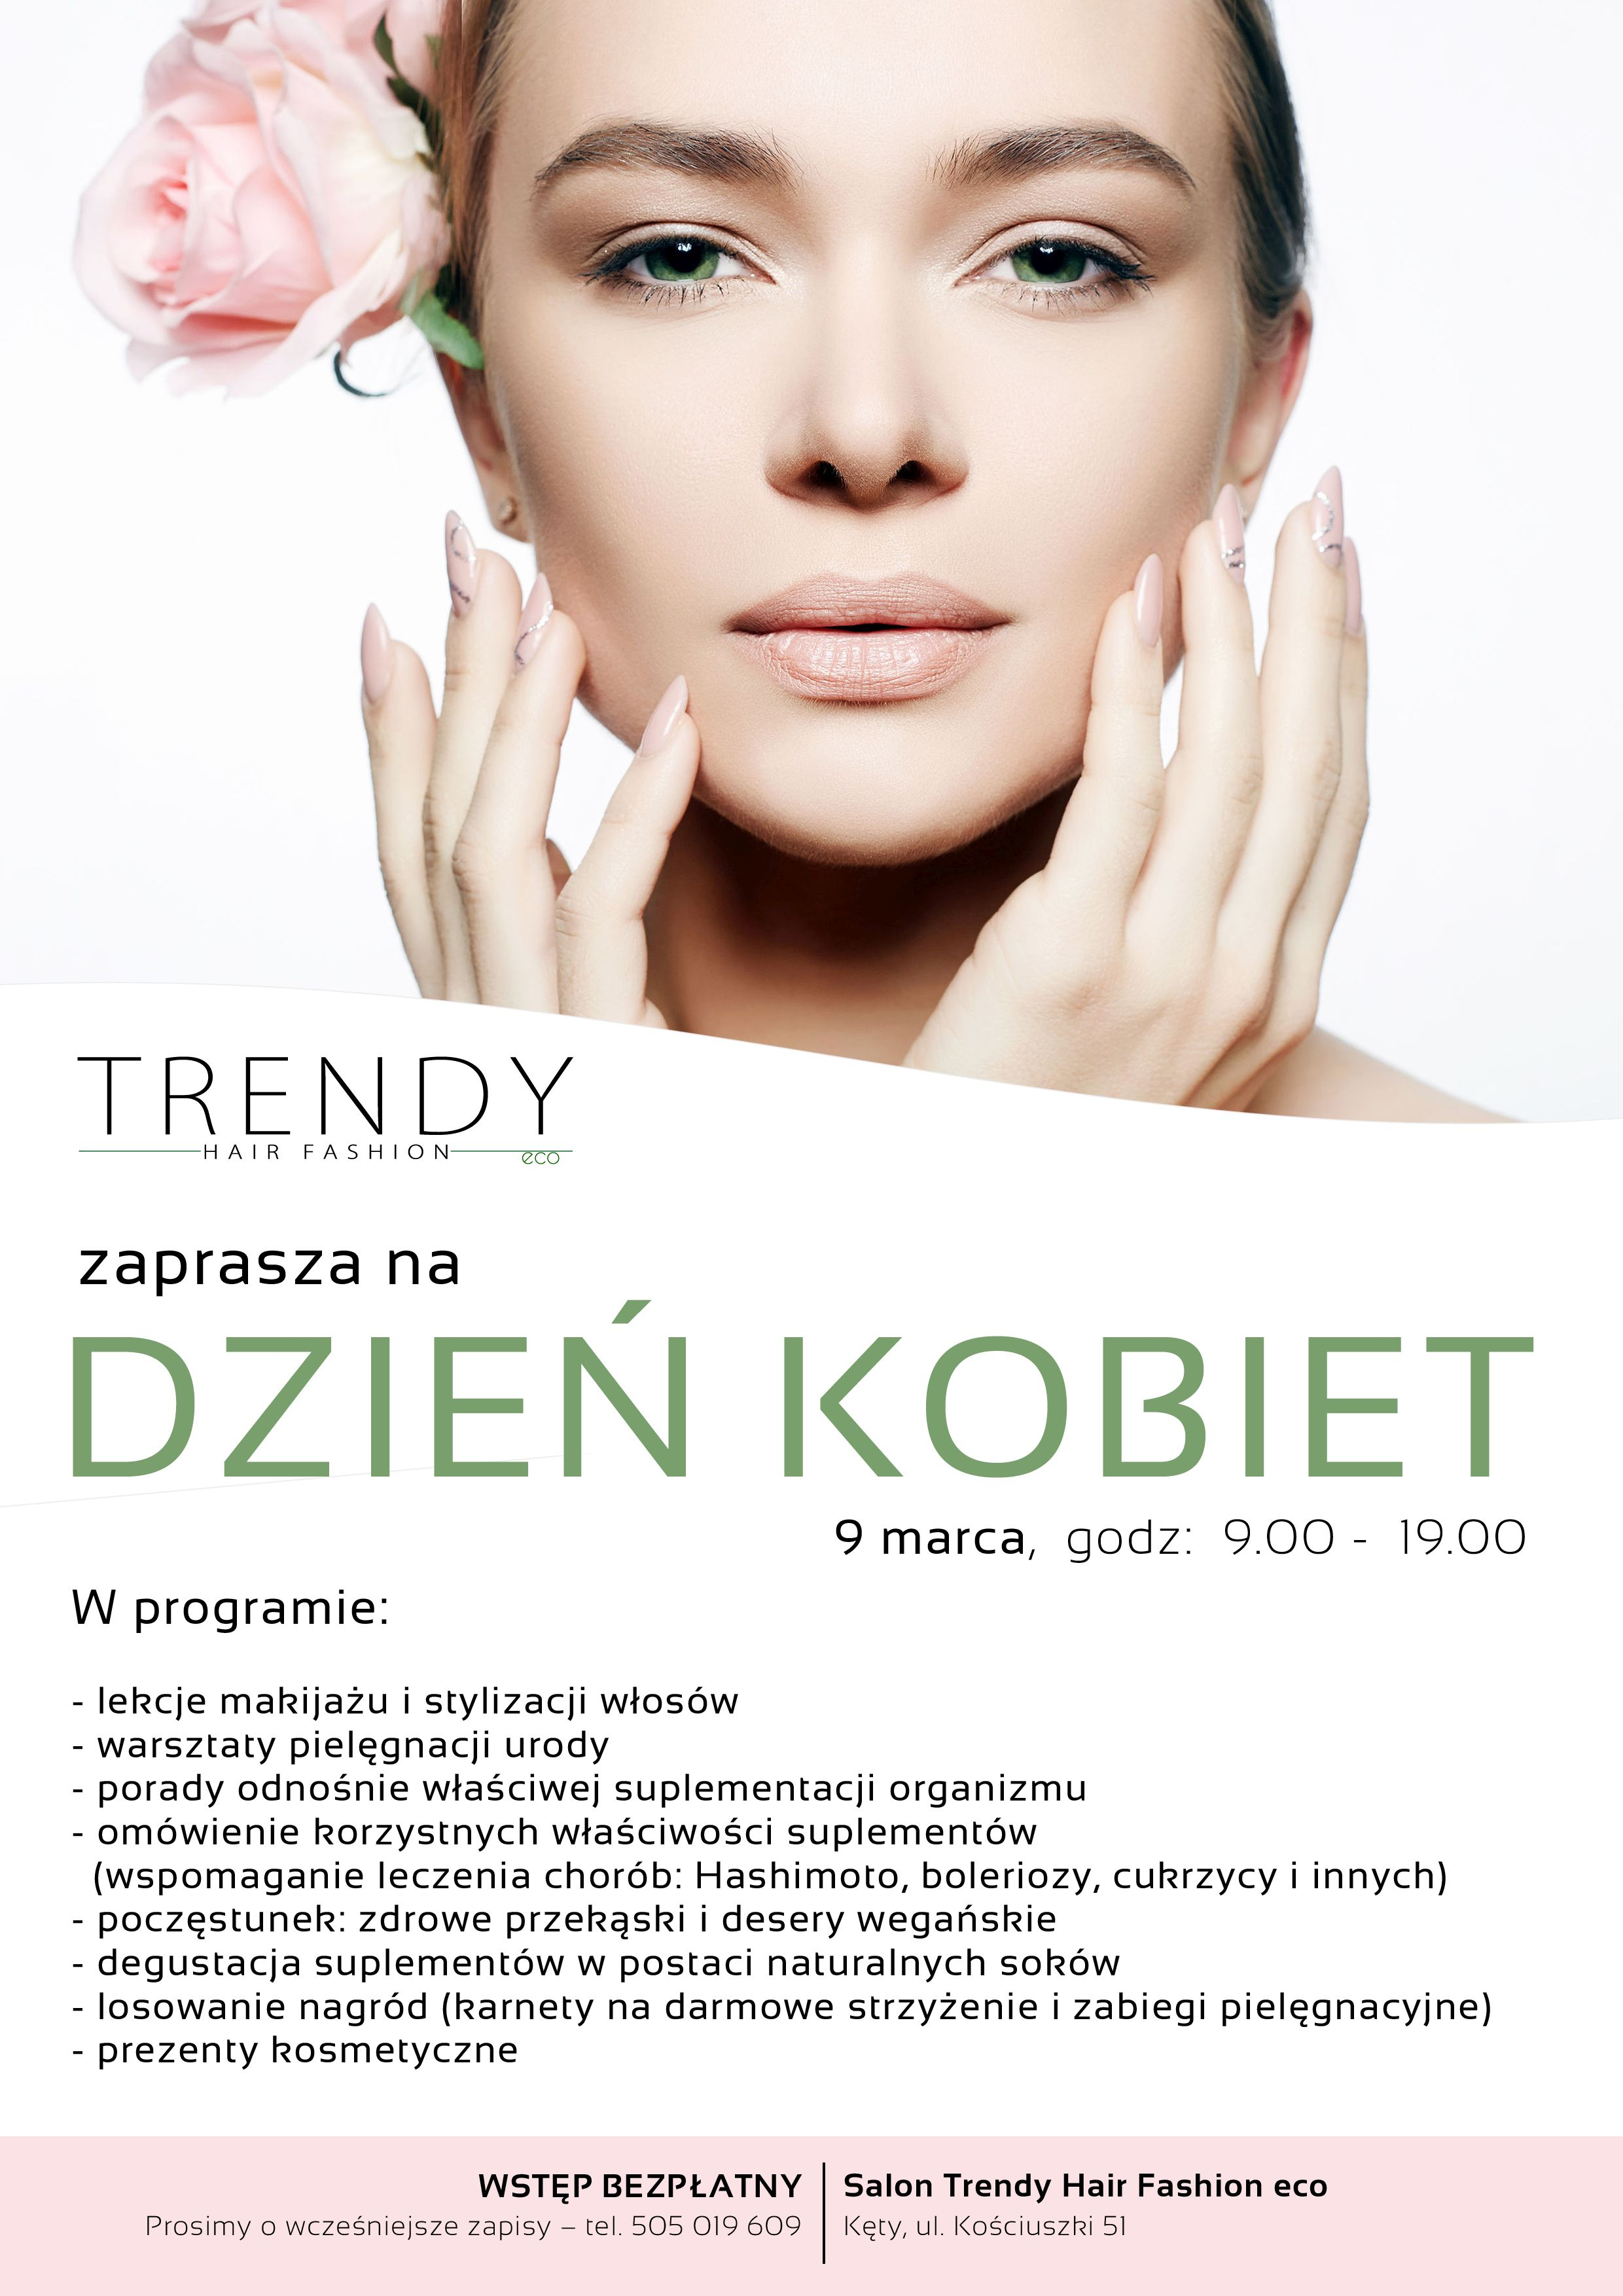 Trendy Hair Fashion eco w Kętach. KONKURS